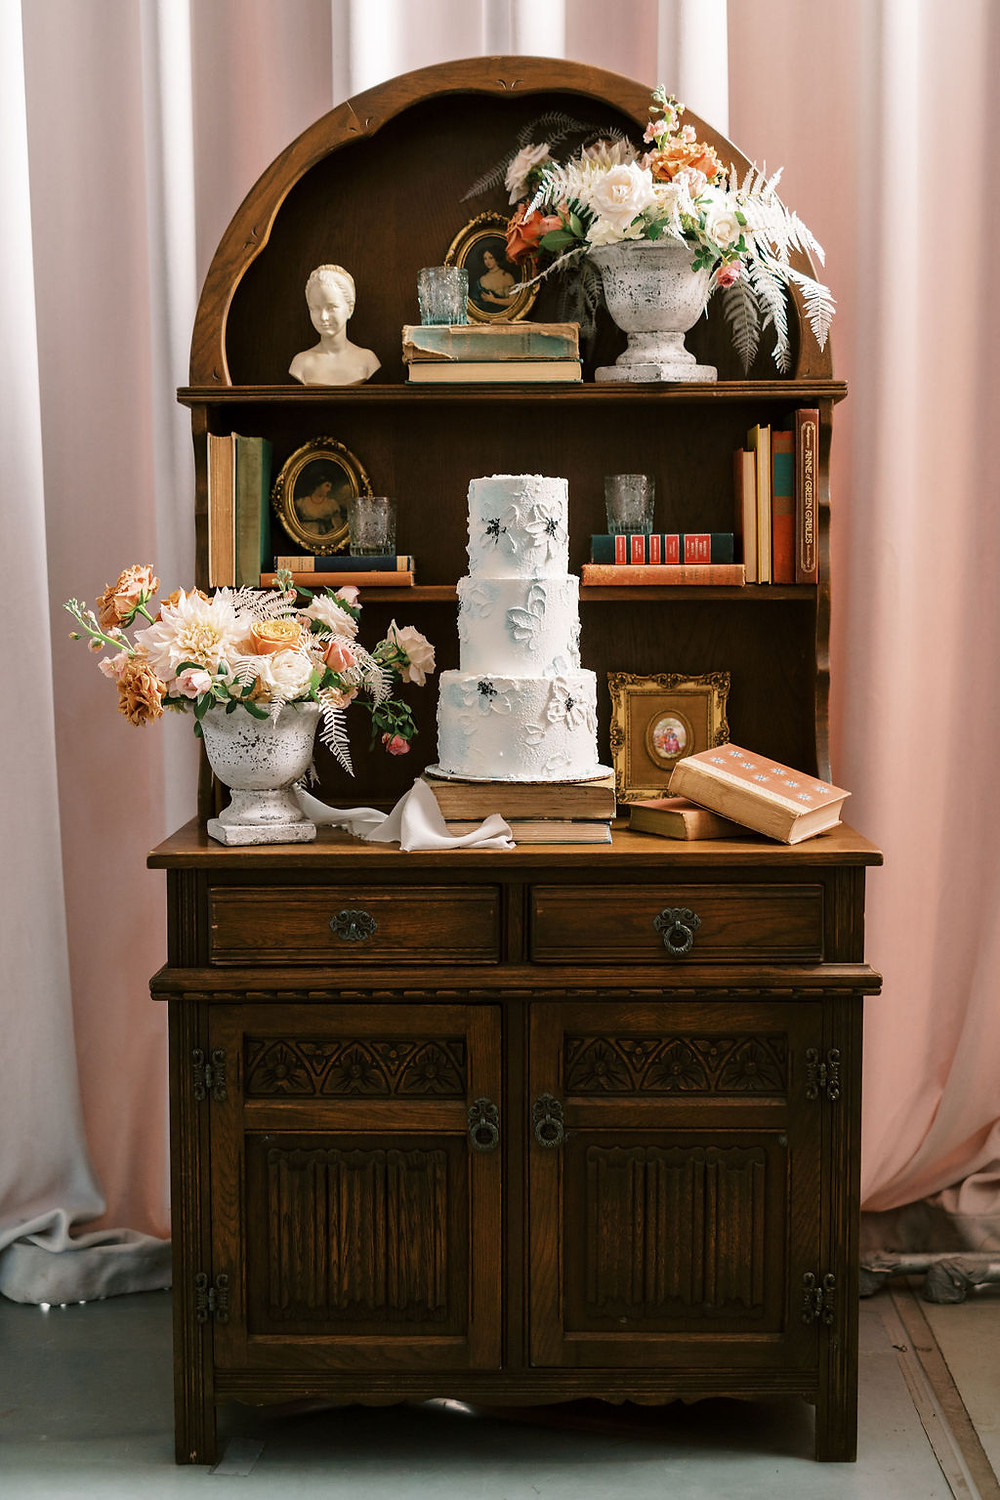 Bookcase with Wedding Cake, Vintage Books, and Antique Decor for Bridgerton Inspired Wedding at the Marigny Opera House in New Orleans with Lounge Spaces and Vintage Furniture by Lovegood Rentals